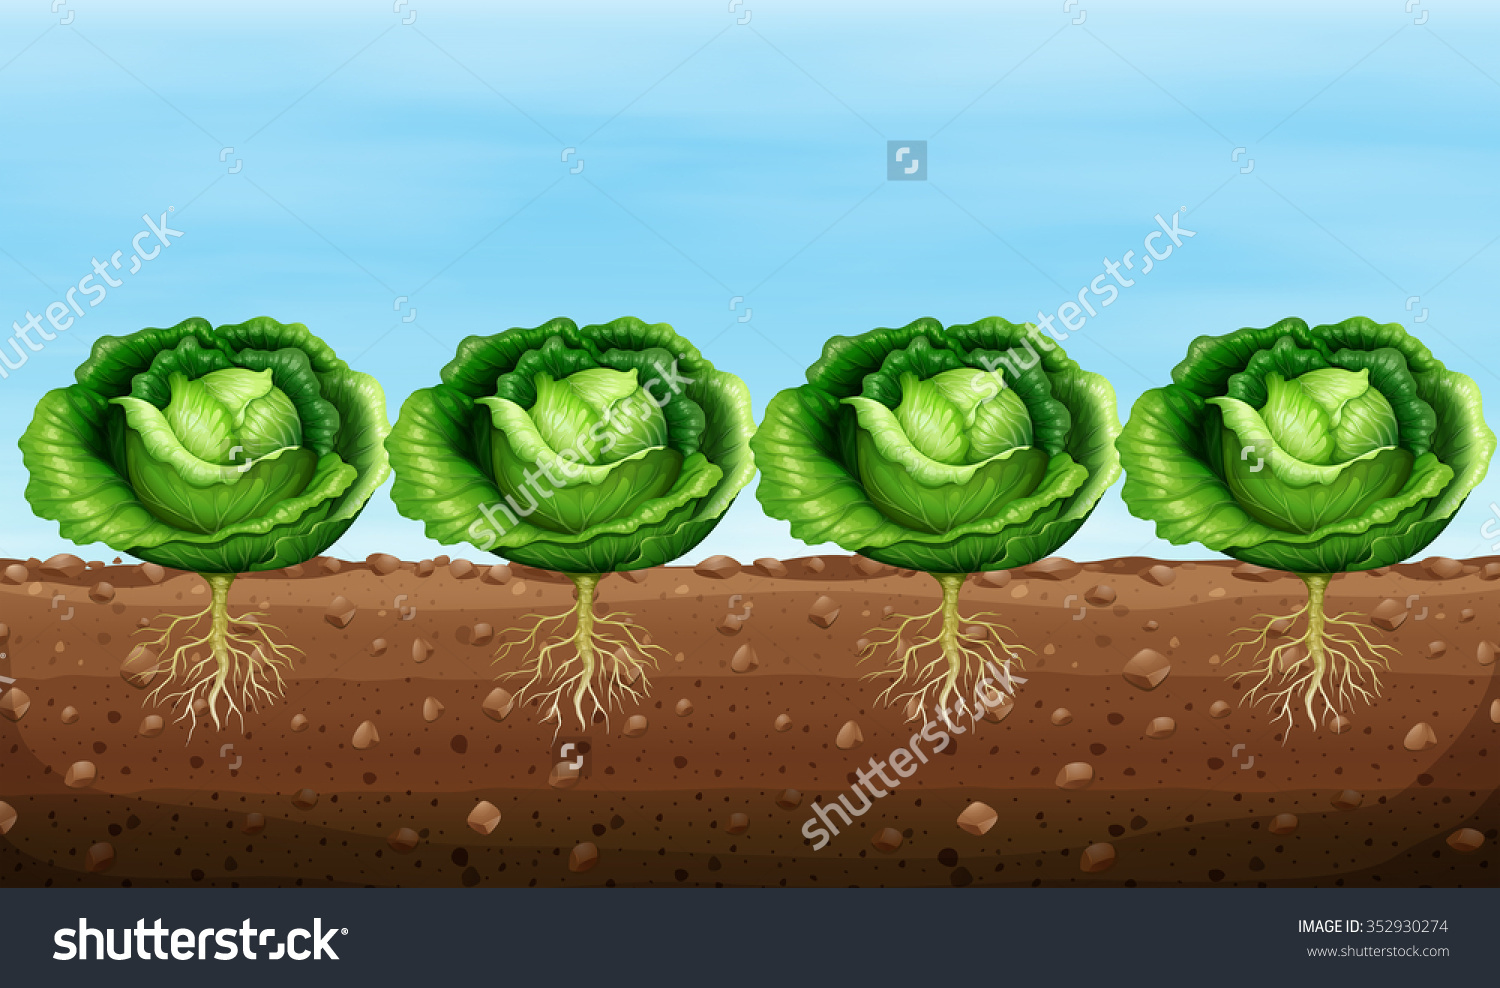 Cabbage Plants On Ground Illustration Stock Vector 352930274.